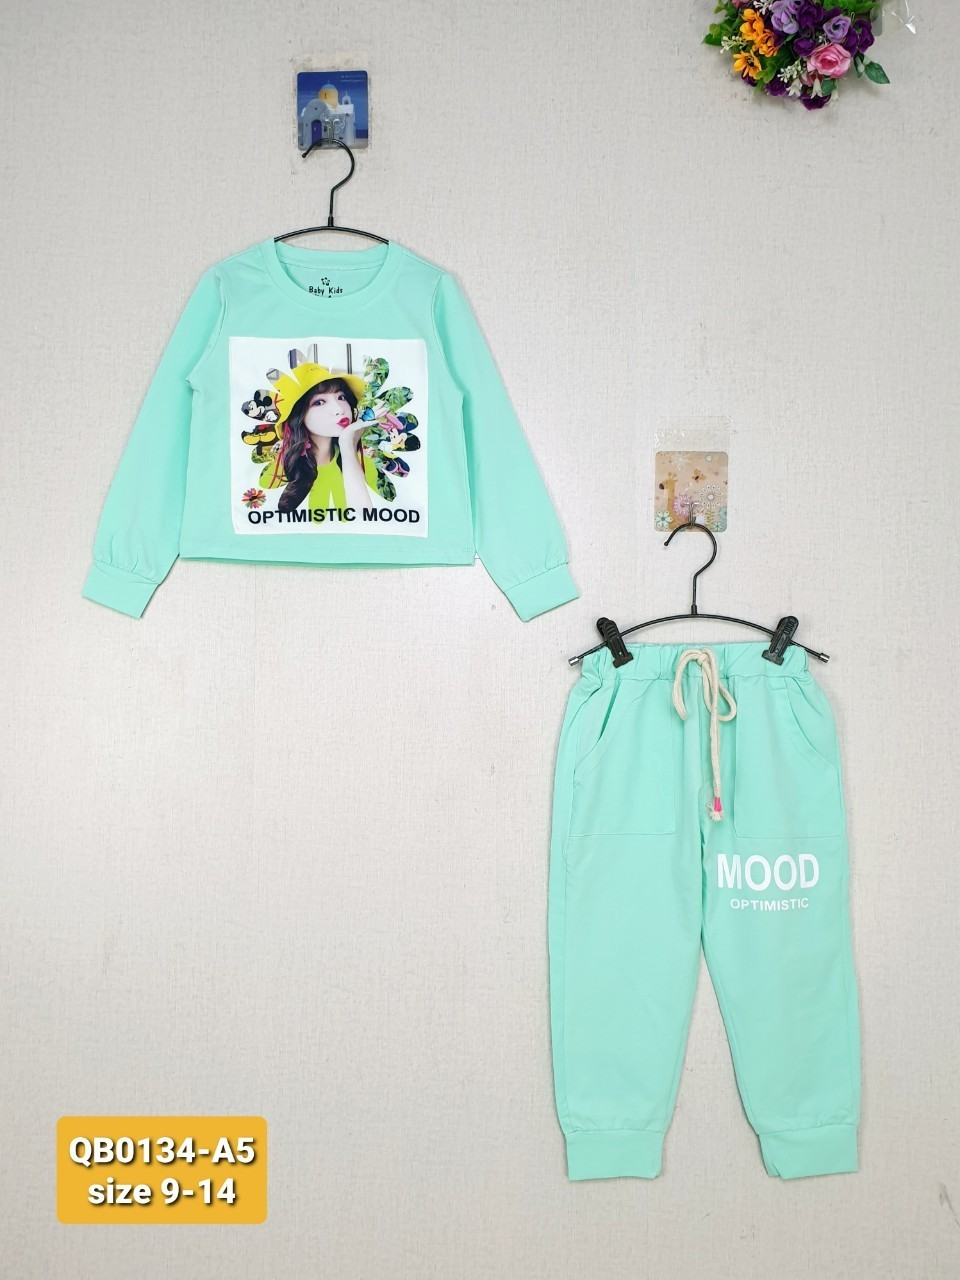 Z2797350654234 D604045dd33c23d0acafb2afb1448faa B02 Vkids.vn FashionKids Made In Vietnam 9821